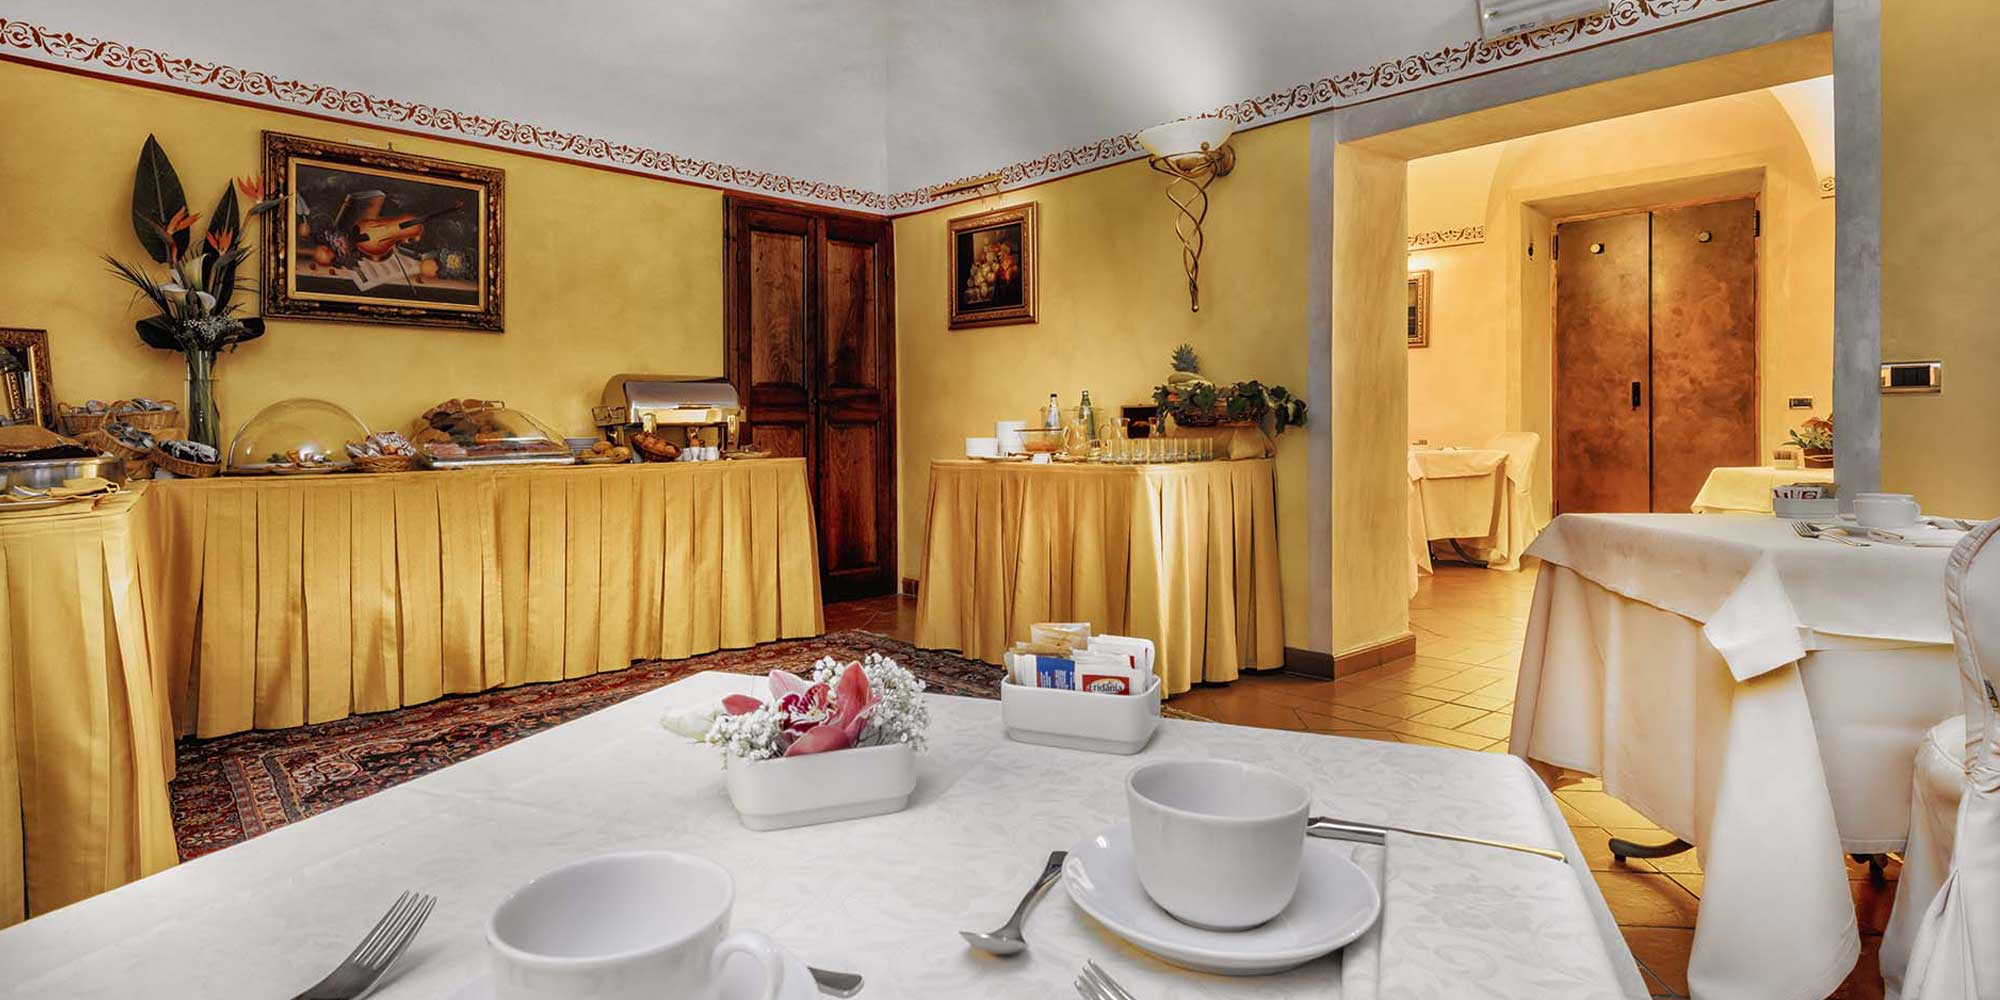 Palace Hotel Relais Falisco - Rooms